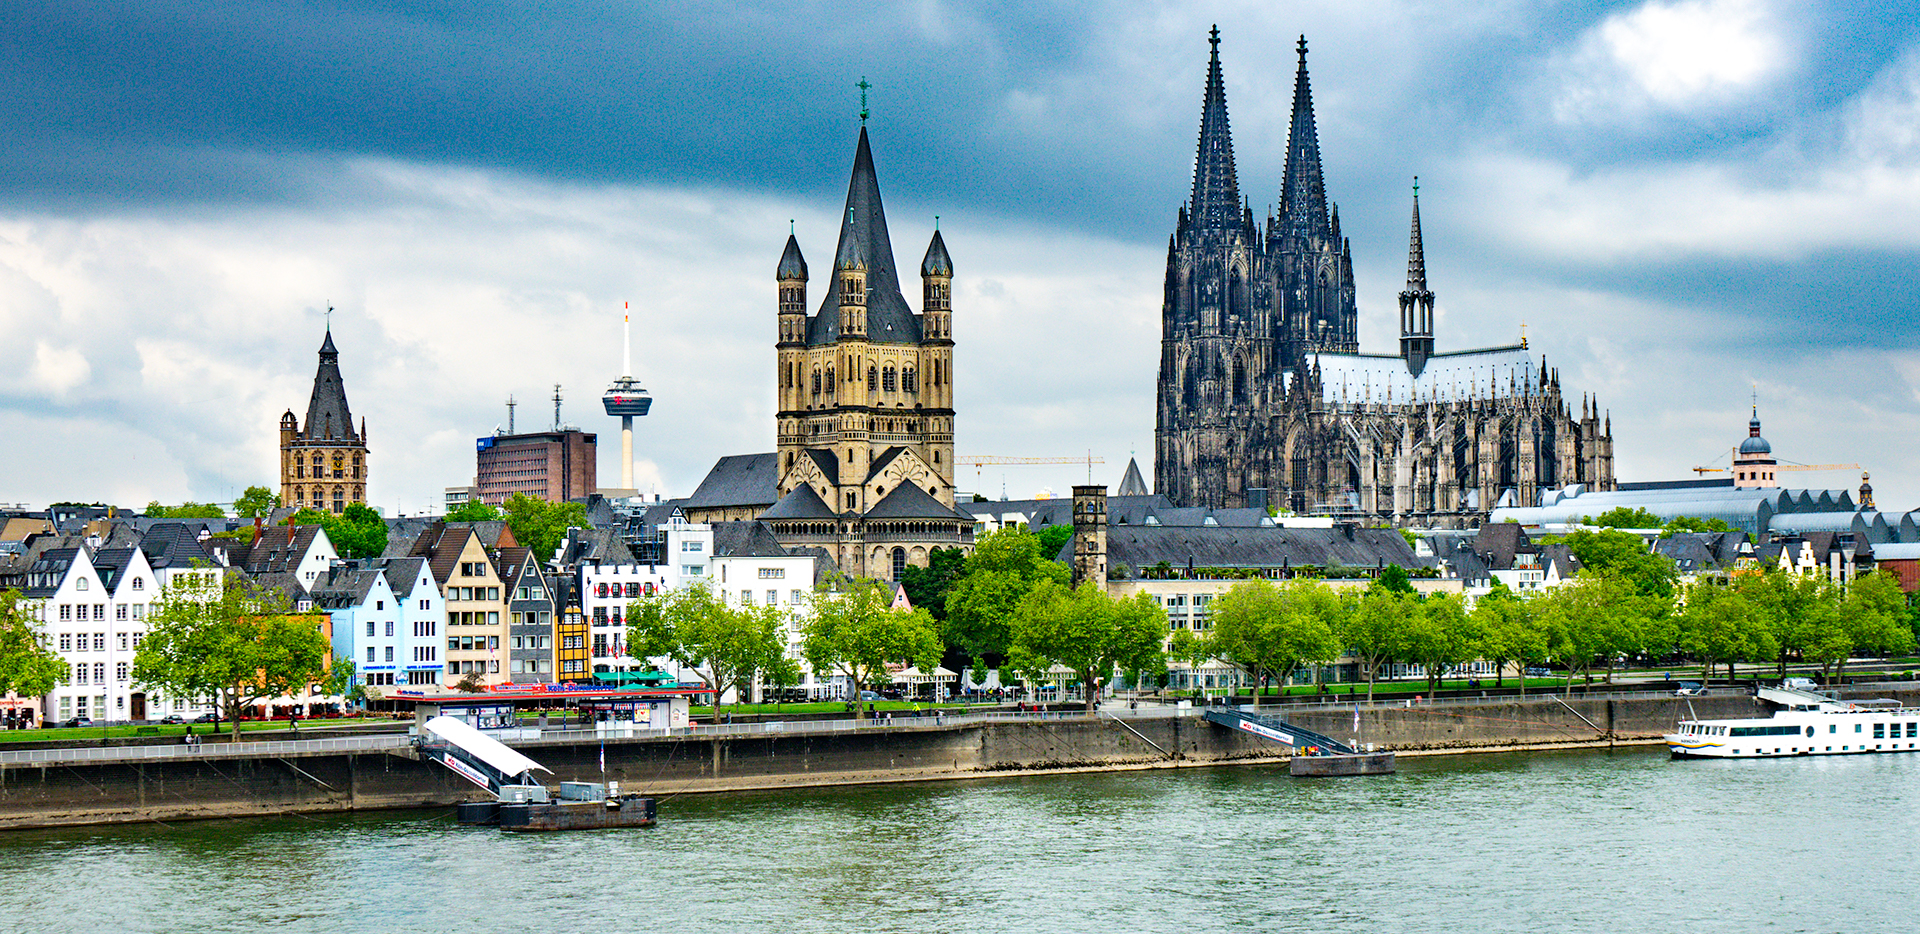 Cologne Skyline from the Rhine River